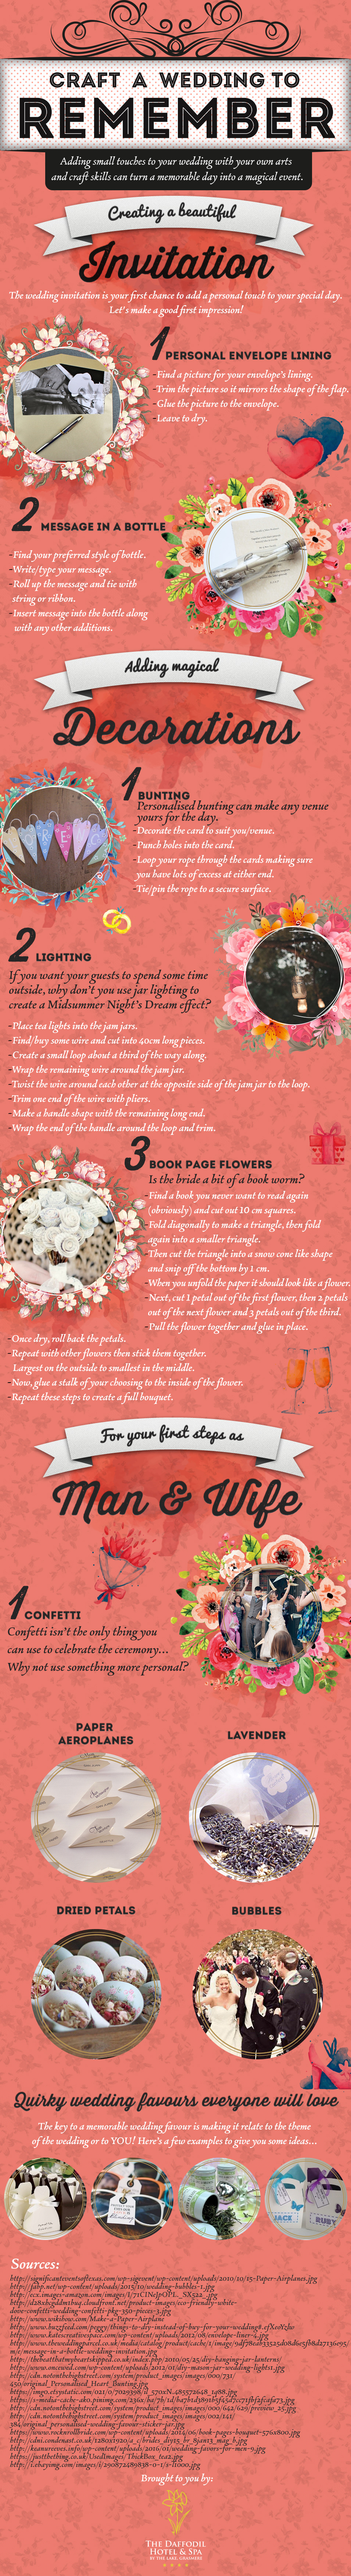 Craft A Wedding To Remember